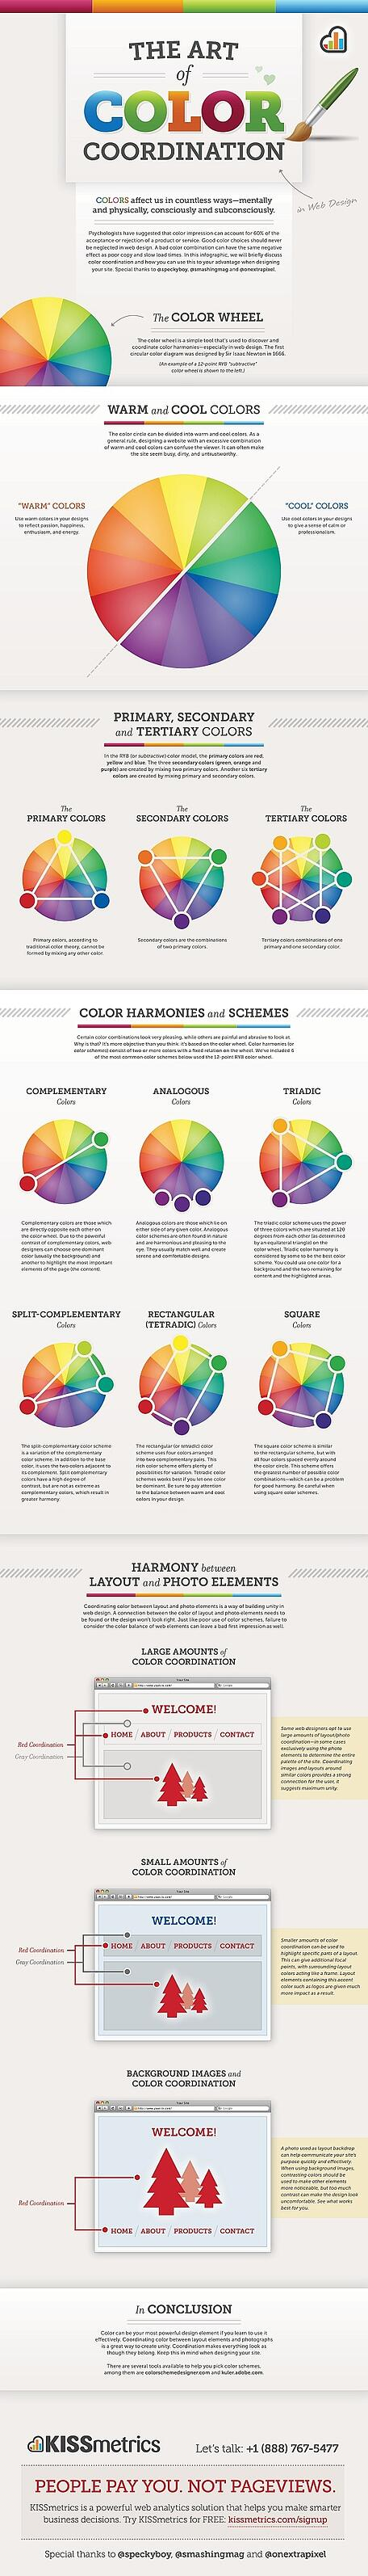 color-coordination in web design